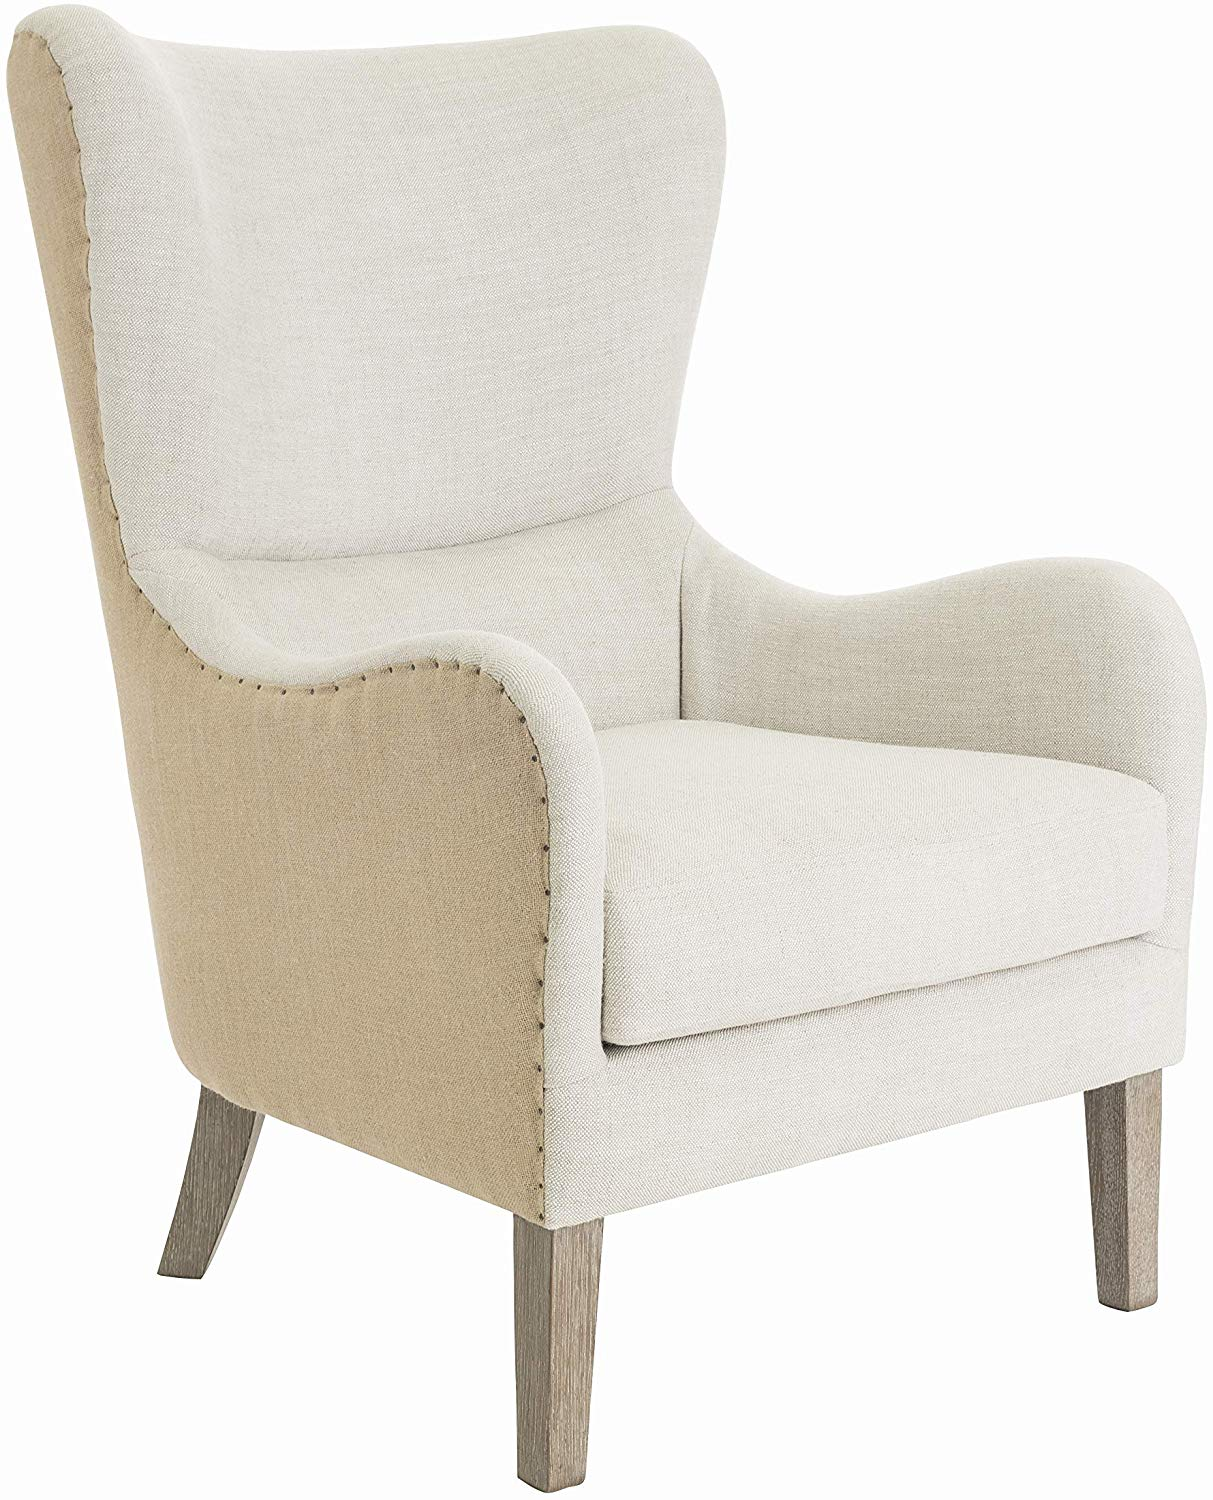 Elle Decor Mid-Century Modern Wingback Chair